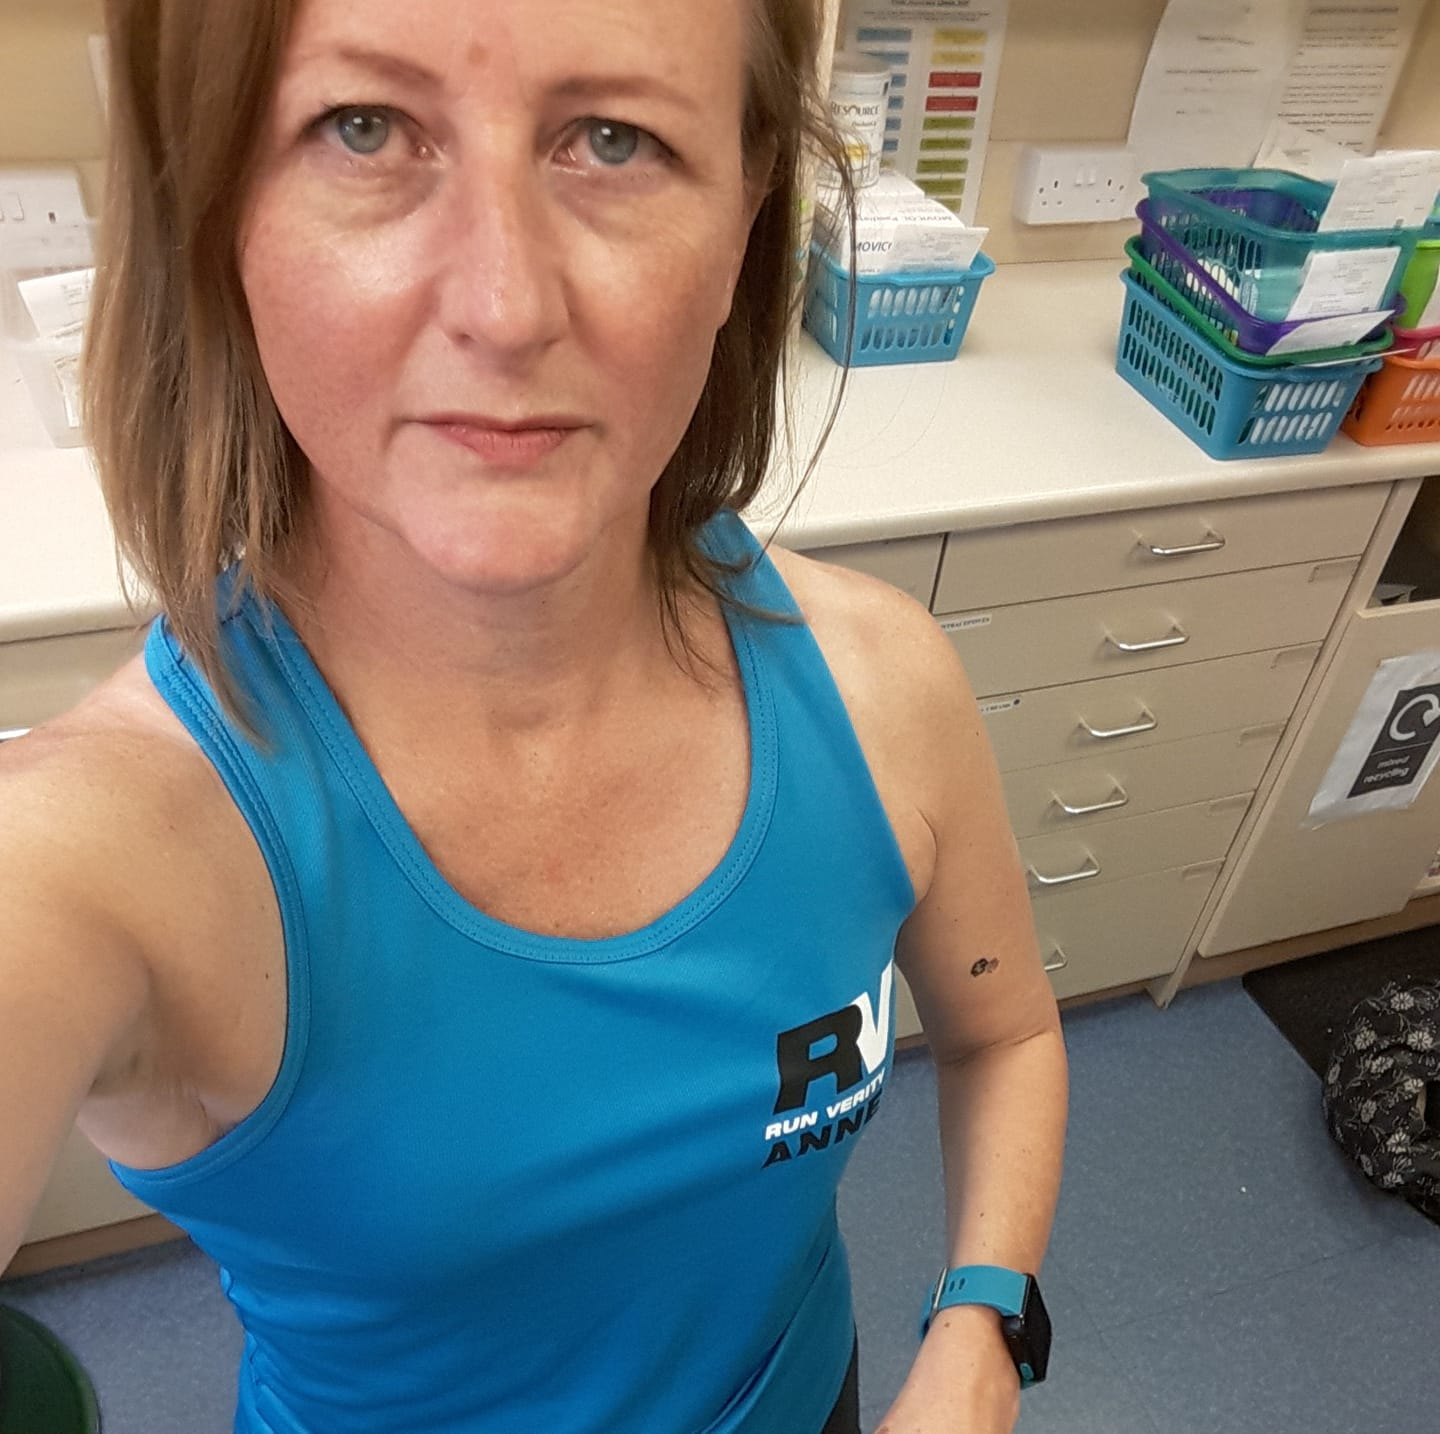 Anne in her colourful RunVerity top